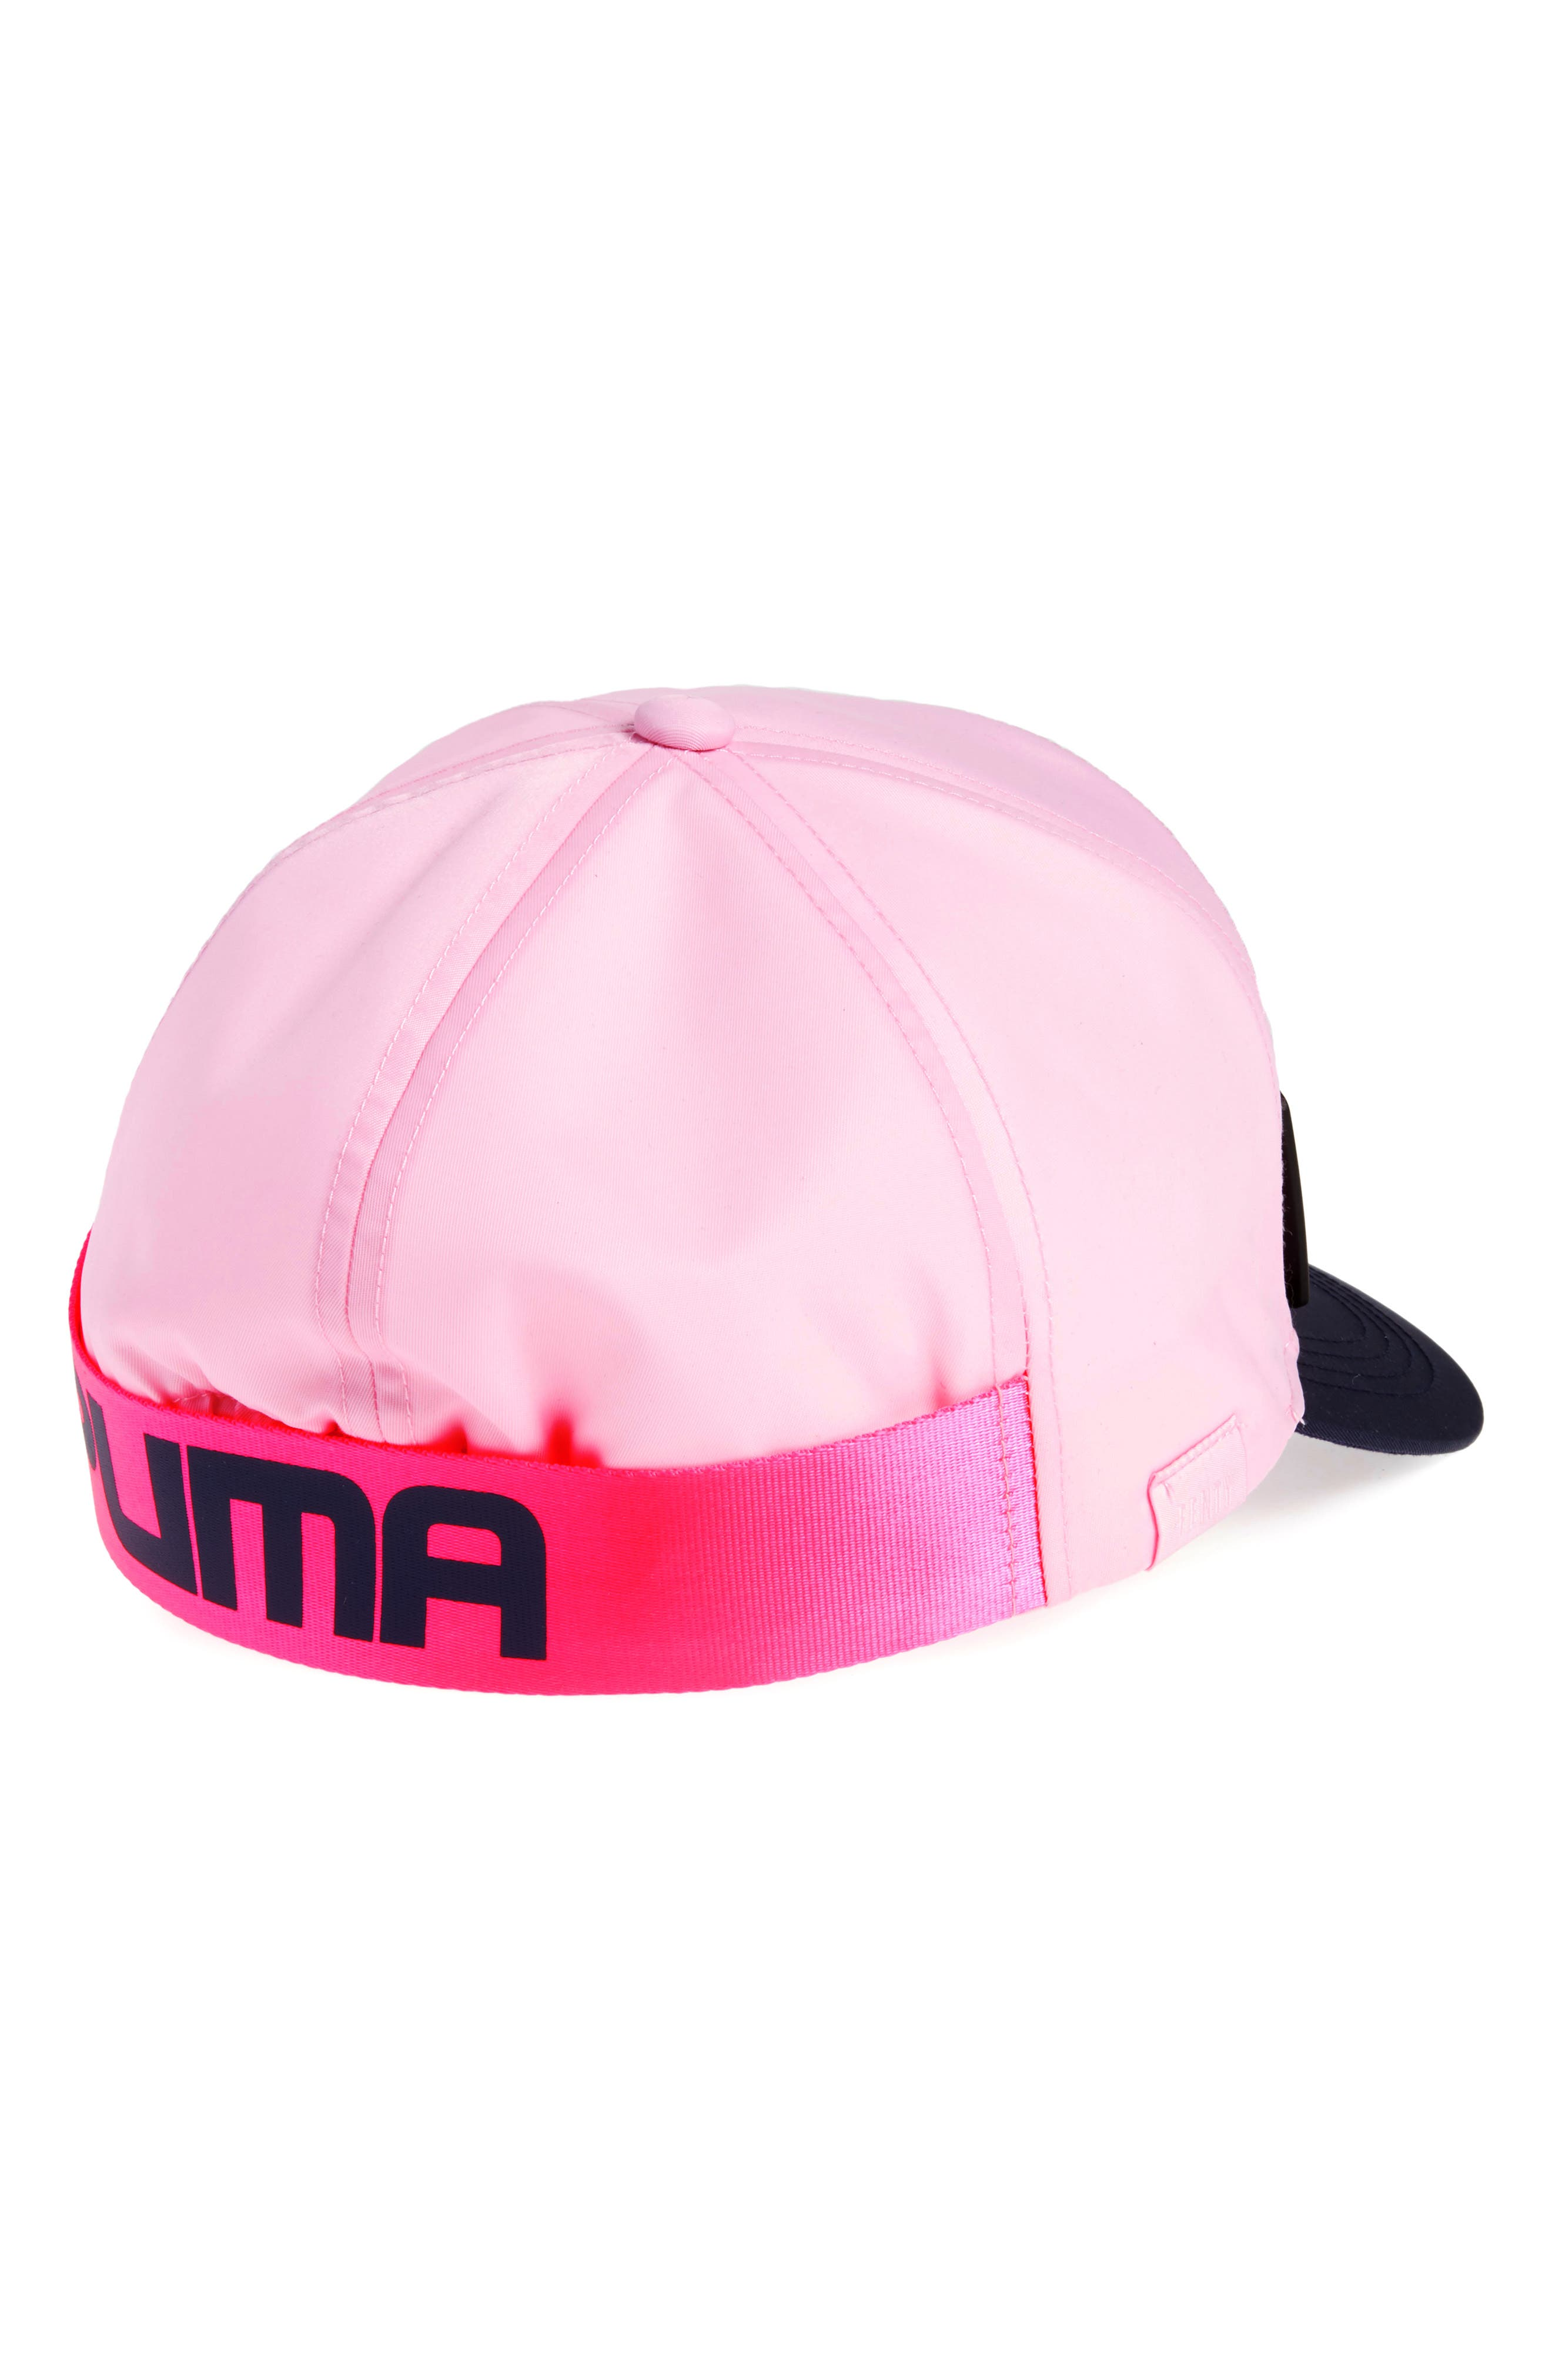 FENTY PUMA by Rihanna Giant Strap Cap,                             Alternate thumbnail 2, color,                             Pink Lady-Evening Blue